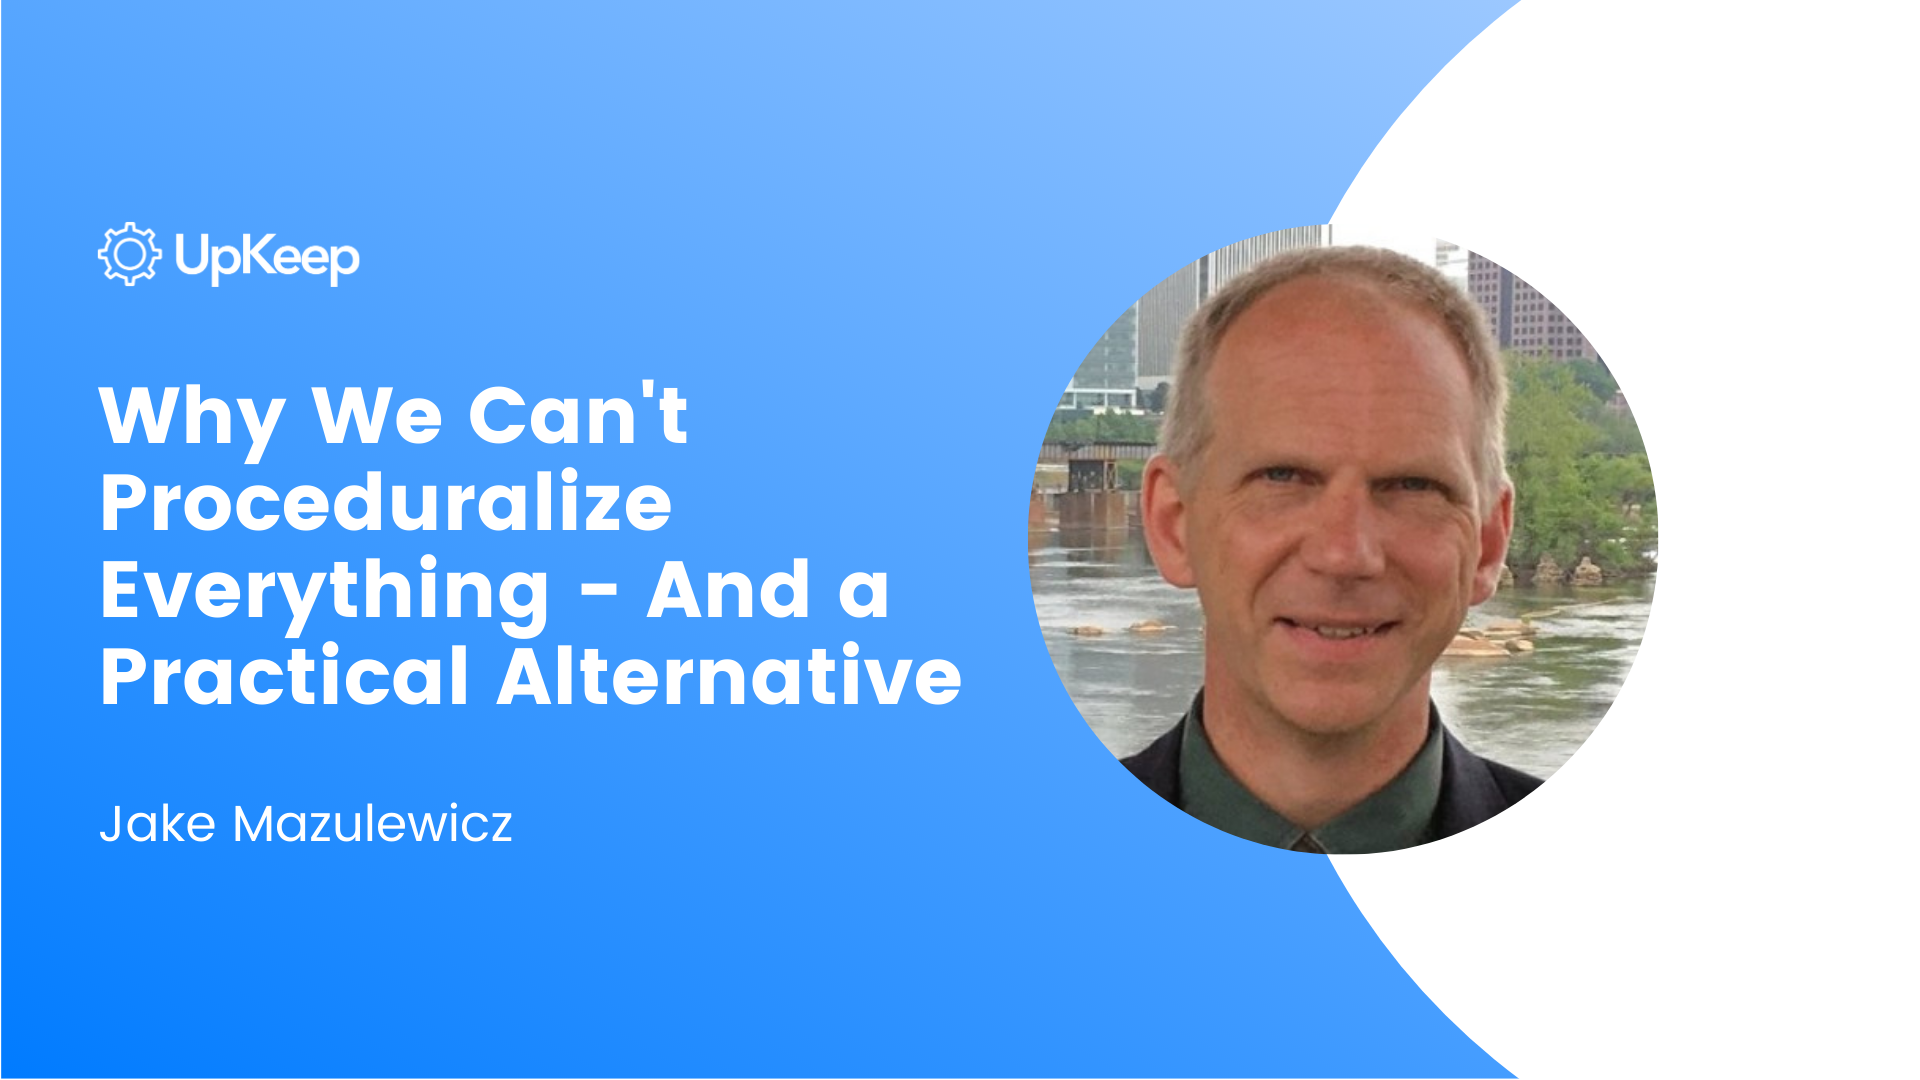 Why We Can't Proceduralize Everything - And a Practical Alternative